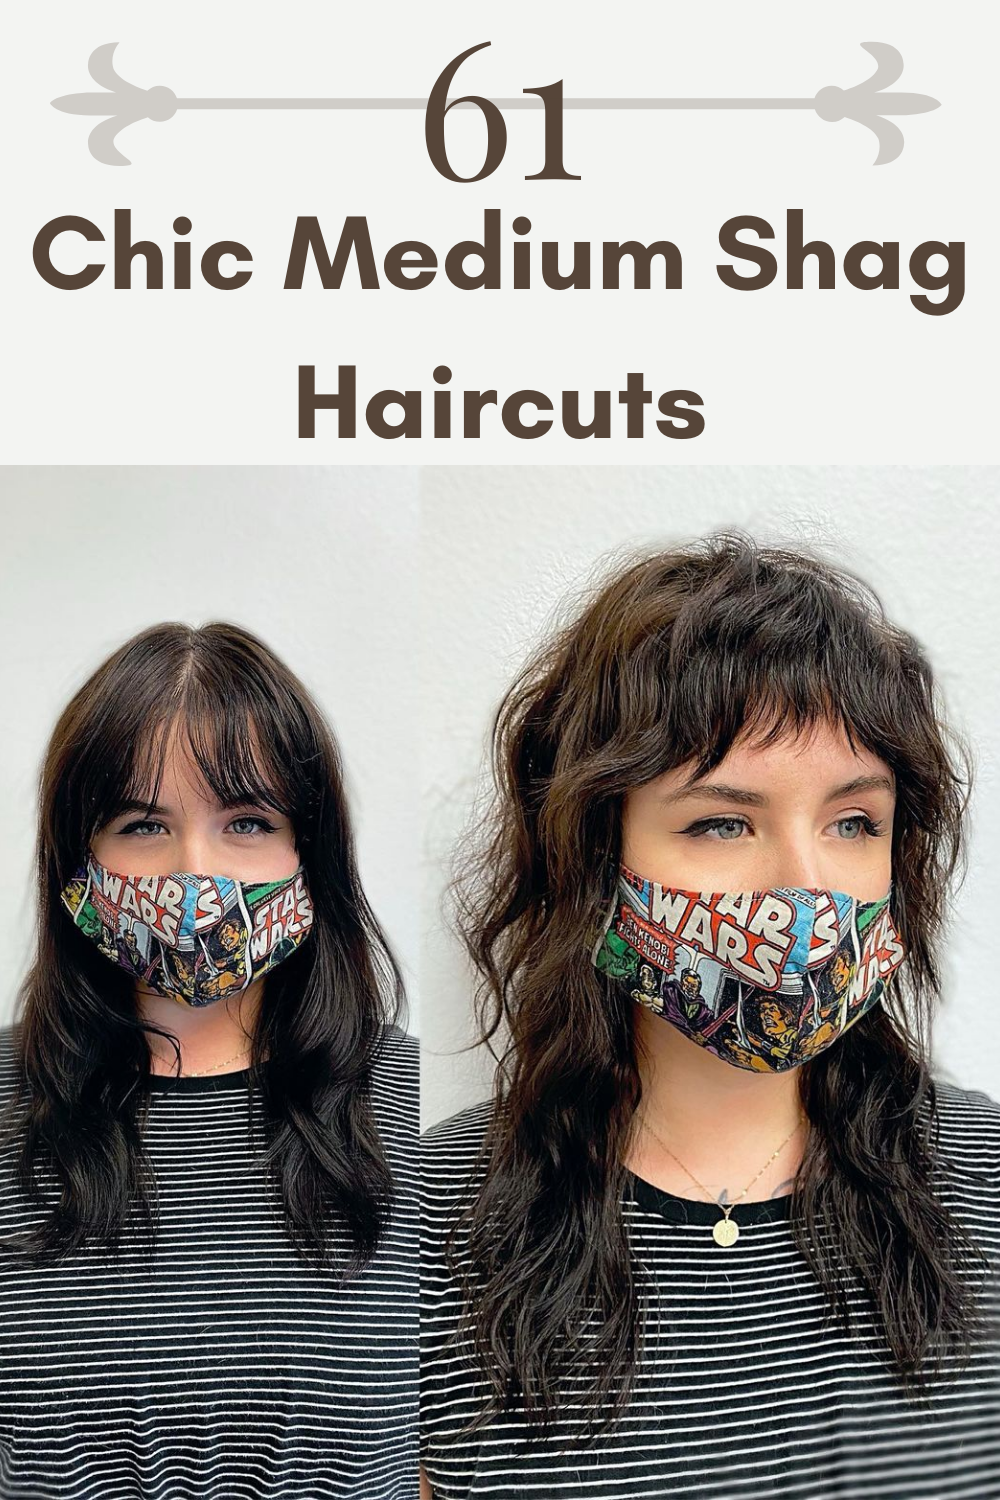 Wet Look Shaggy Hair We collected 61 chic medium s